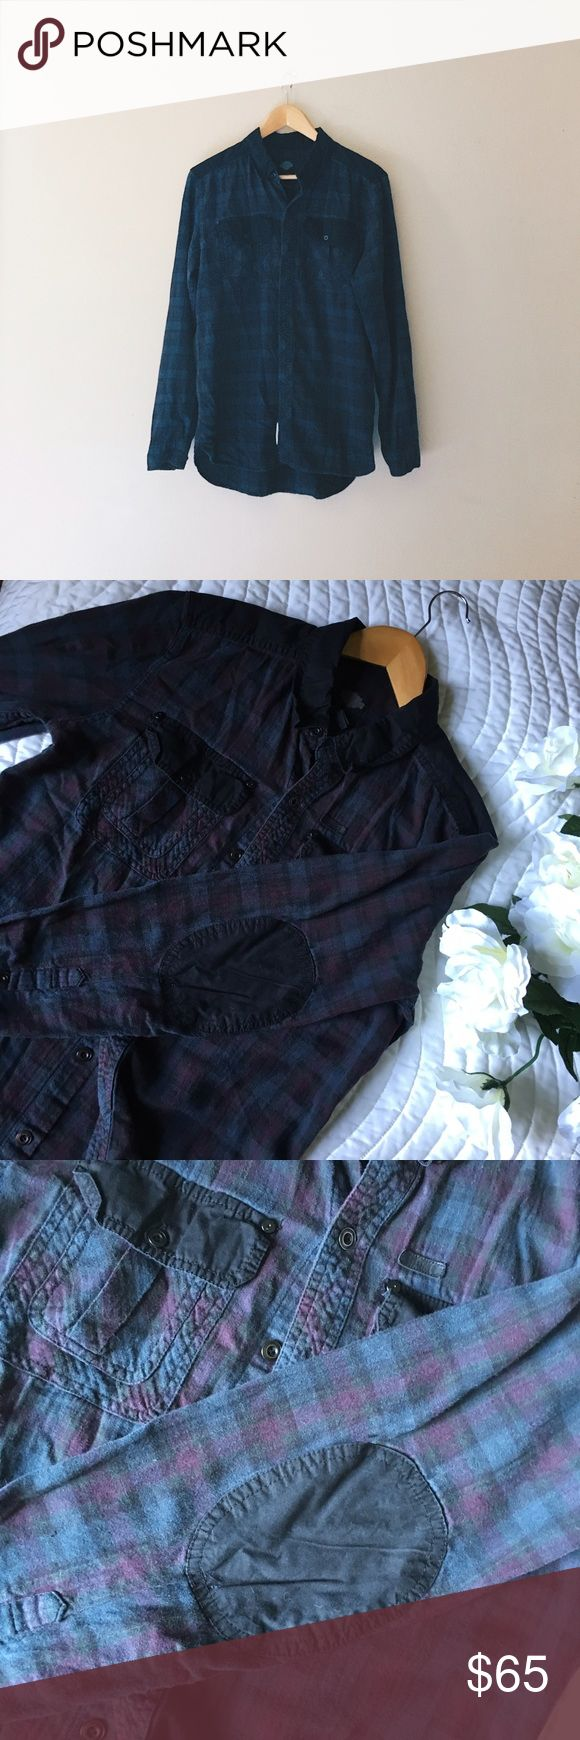 Harley Davidson Plaid Flannel Shirt W Elbow Patch Gently used Harley Davidson FLANNEL. Men's Medium, I wore it only a couple of times. Nice patch detail on elbows!! * ✨ All sales are final ✨ * 🙏🏻 Please ask me any questions prior to making a purchase! * 💖 Let me know if you need additional images or measurements. * ✌️️I usually ship same day, or next day. * 💌 Make an offer! Harley-Davidson Shirts Casual Button Down Shirts